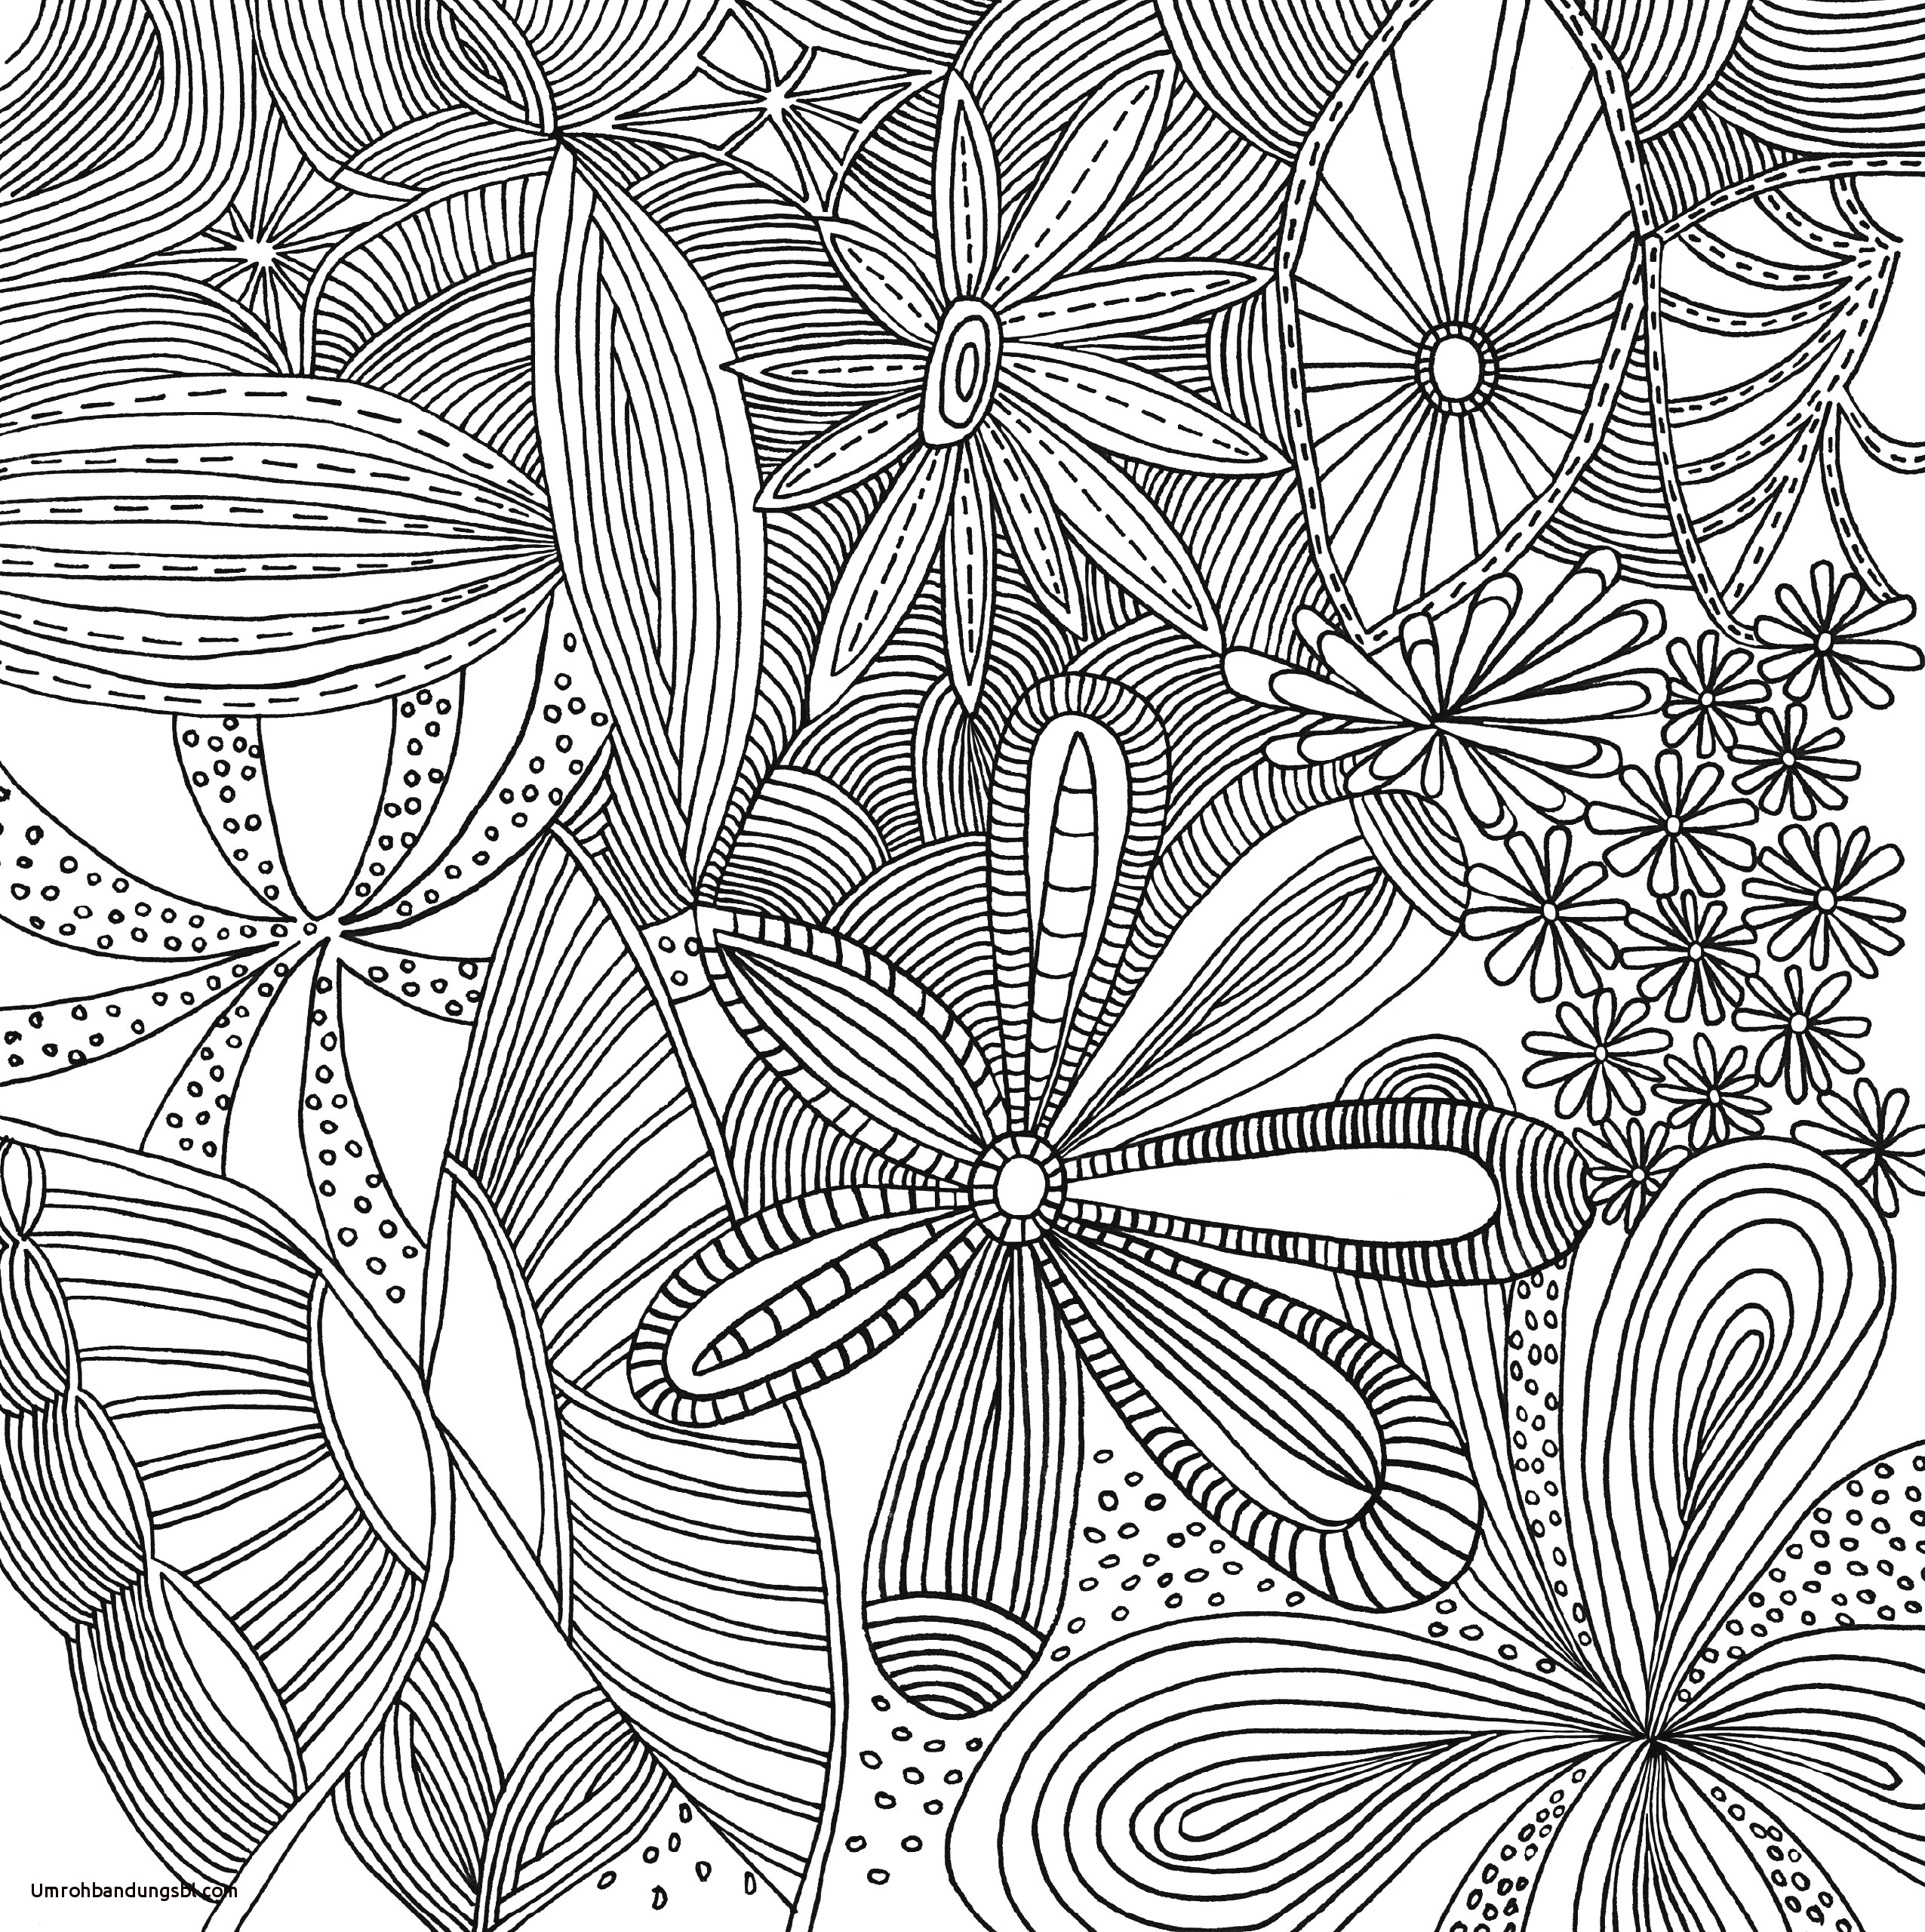 turn pictures into coloring pages for free Collection-Free Relaxing Coloring Pages New Adult Coloring Page Best S S Media Cache Ak0 Pinimg 736x 0d 11-c